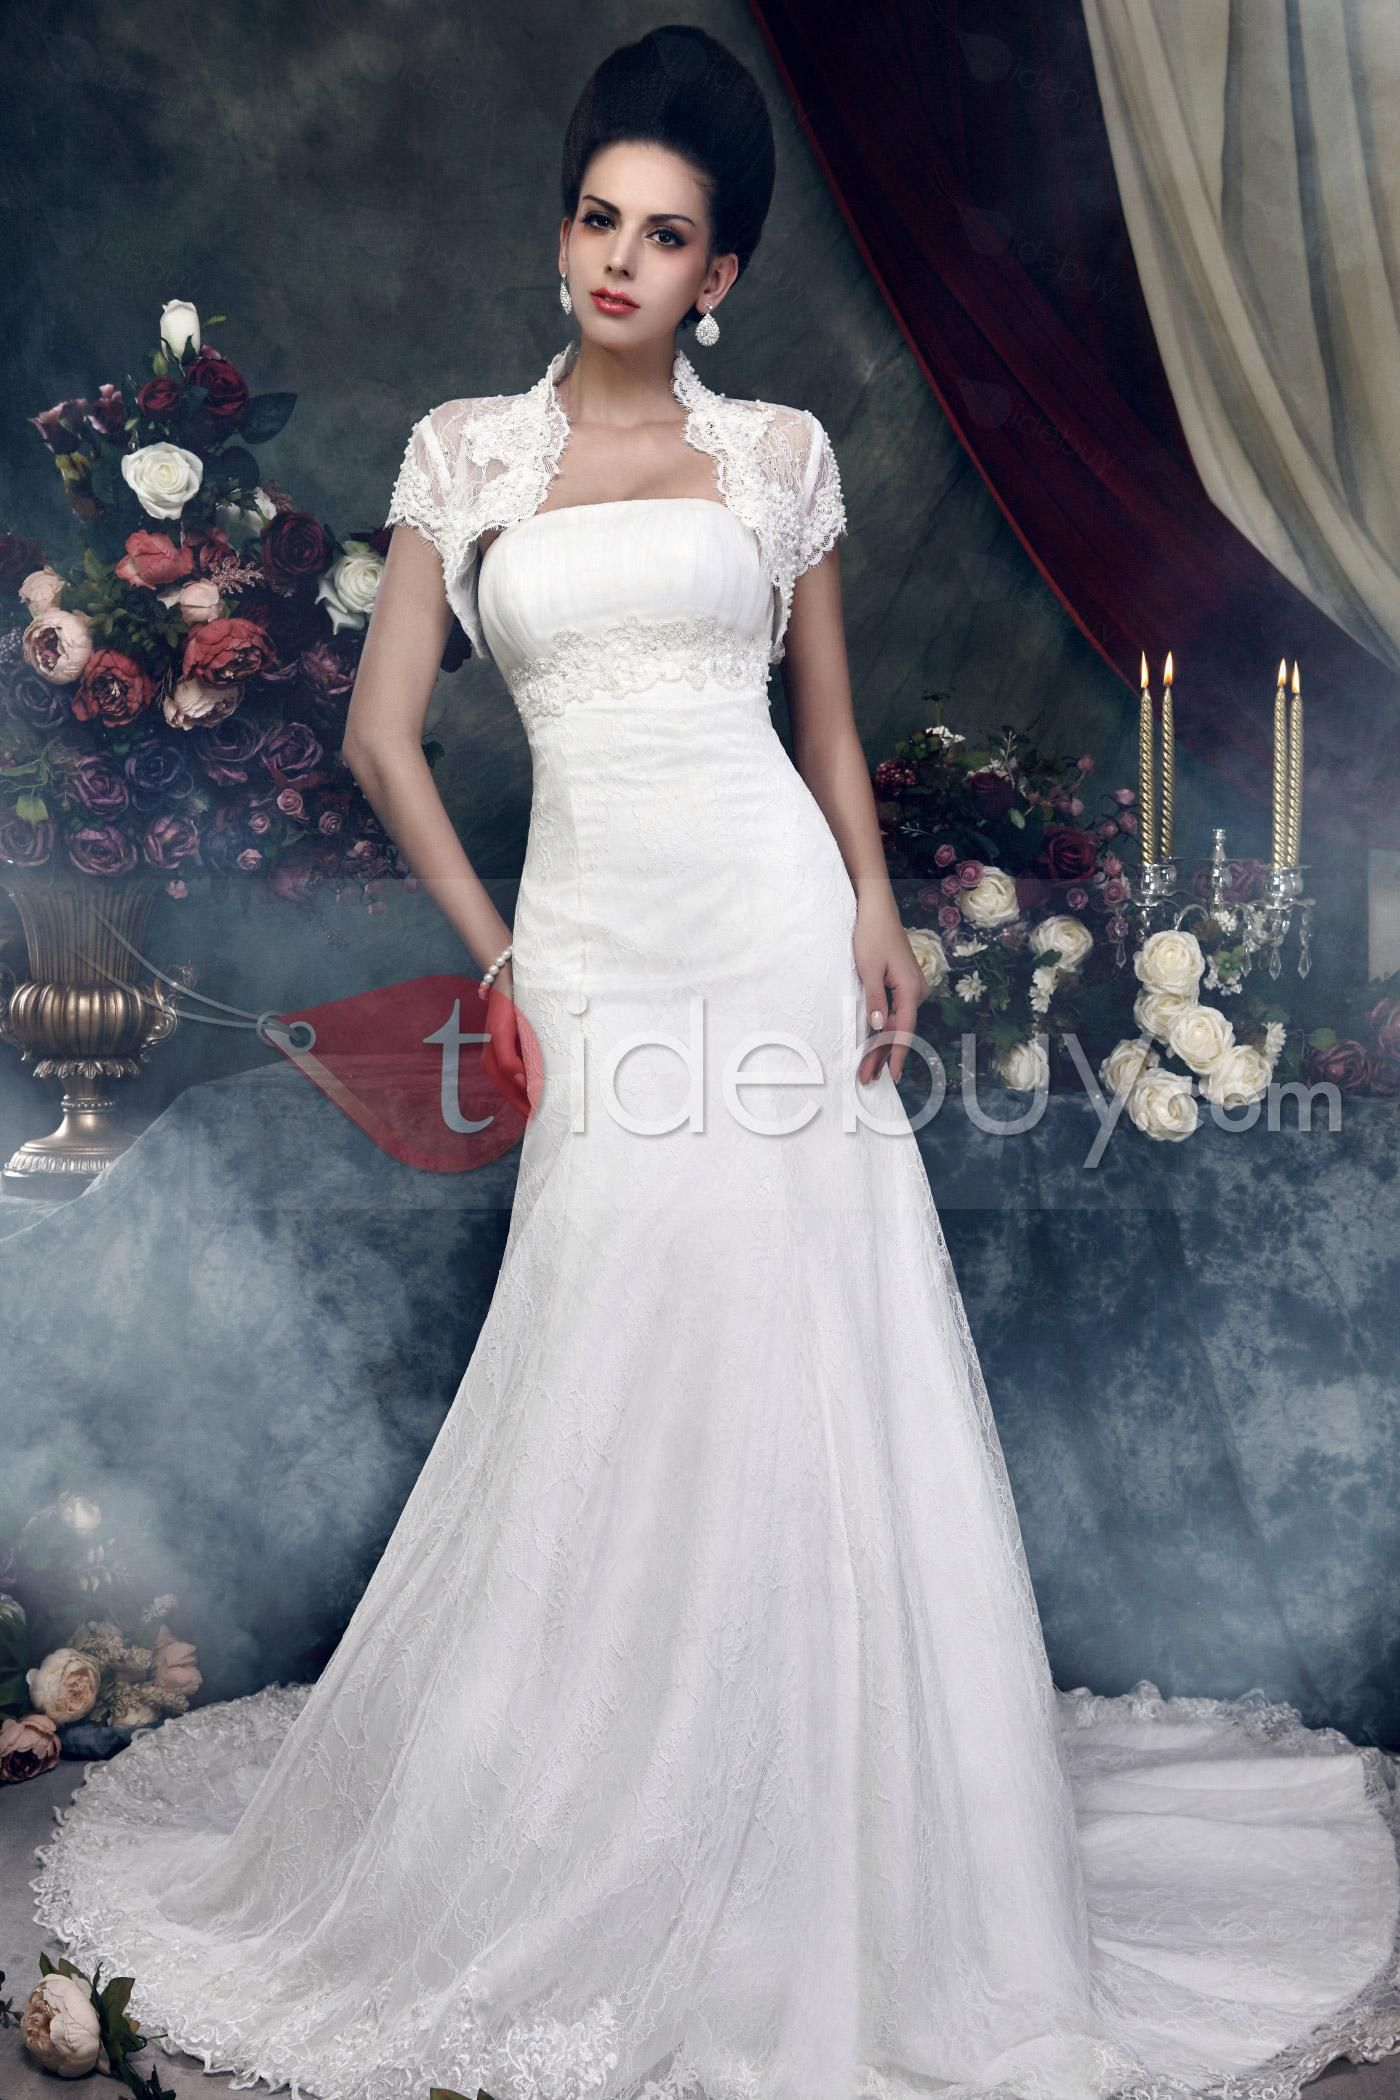 Fantastic strapless neckline aline cathedral train lace talineus